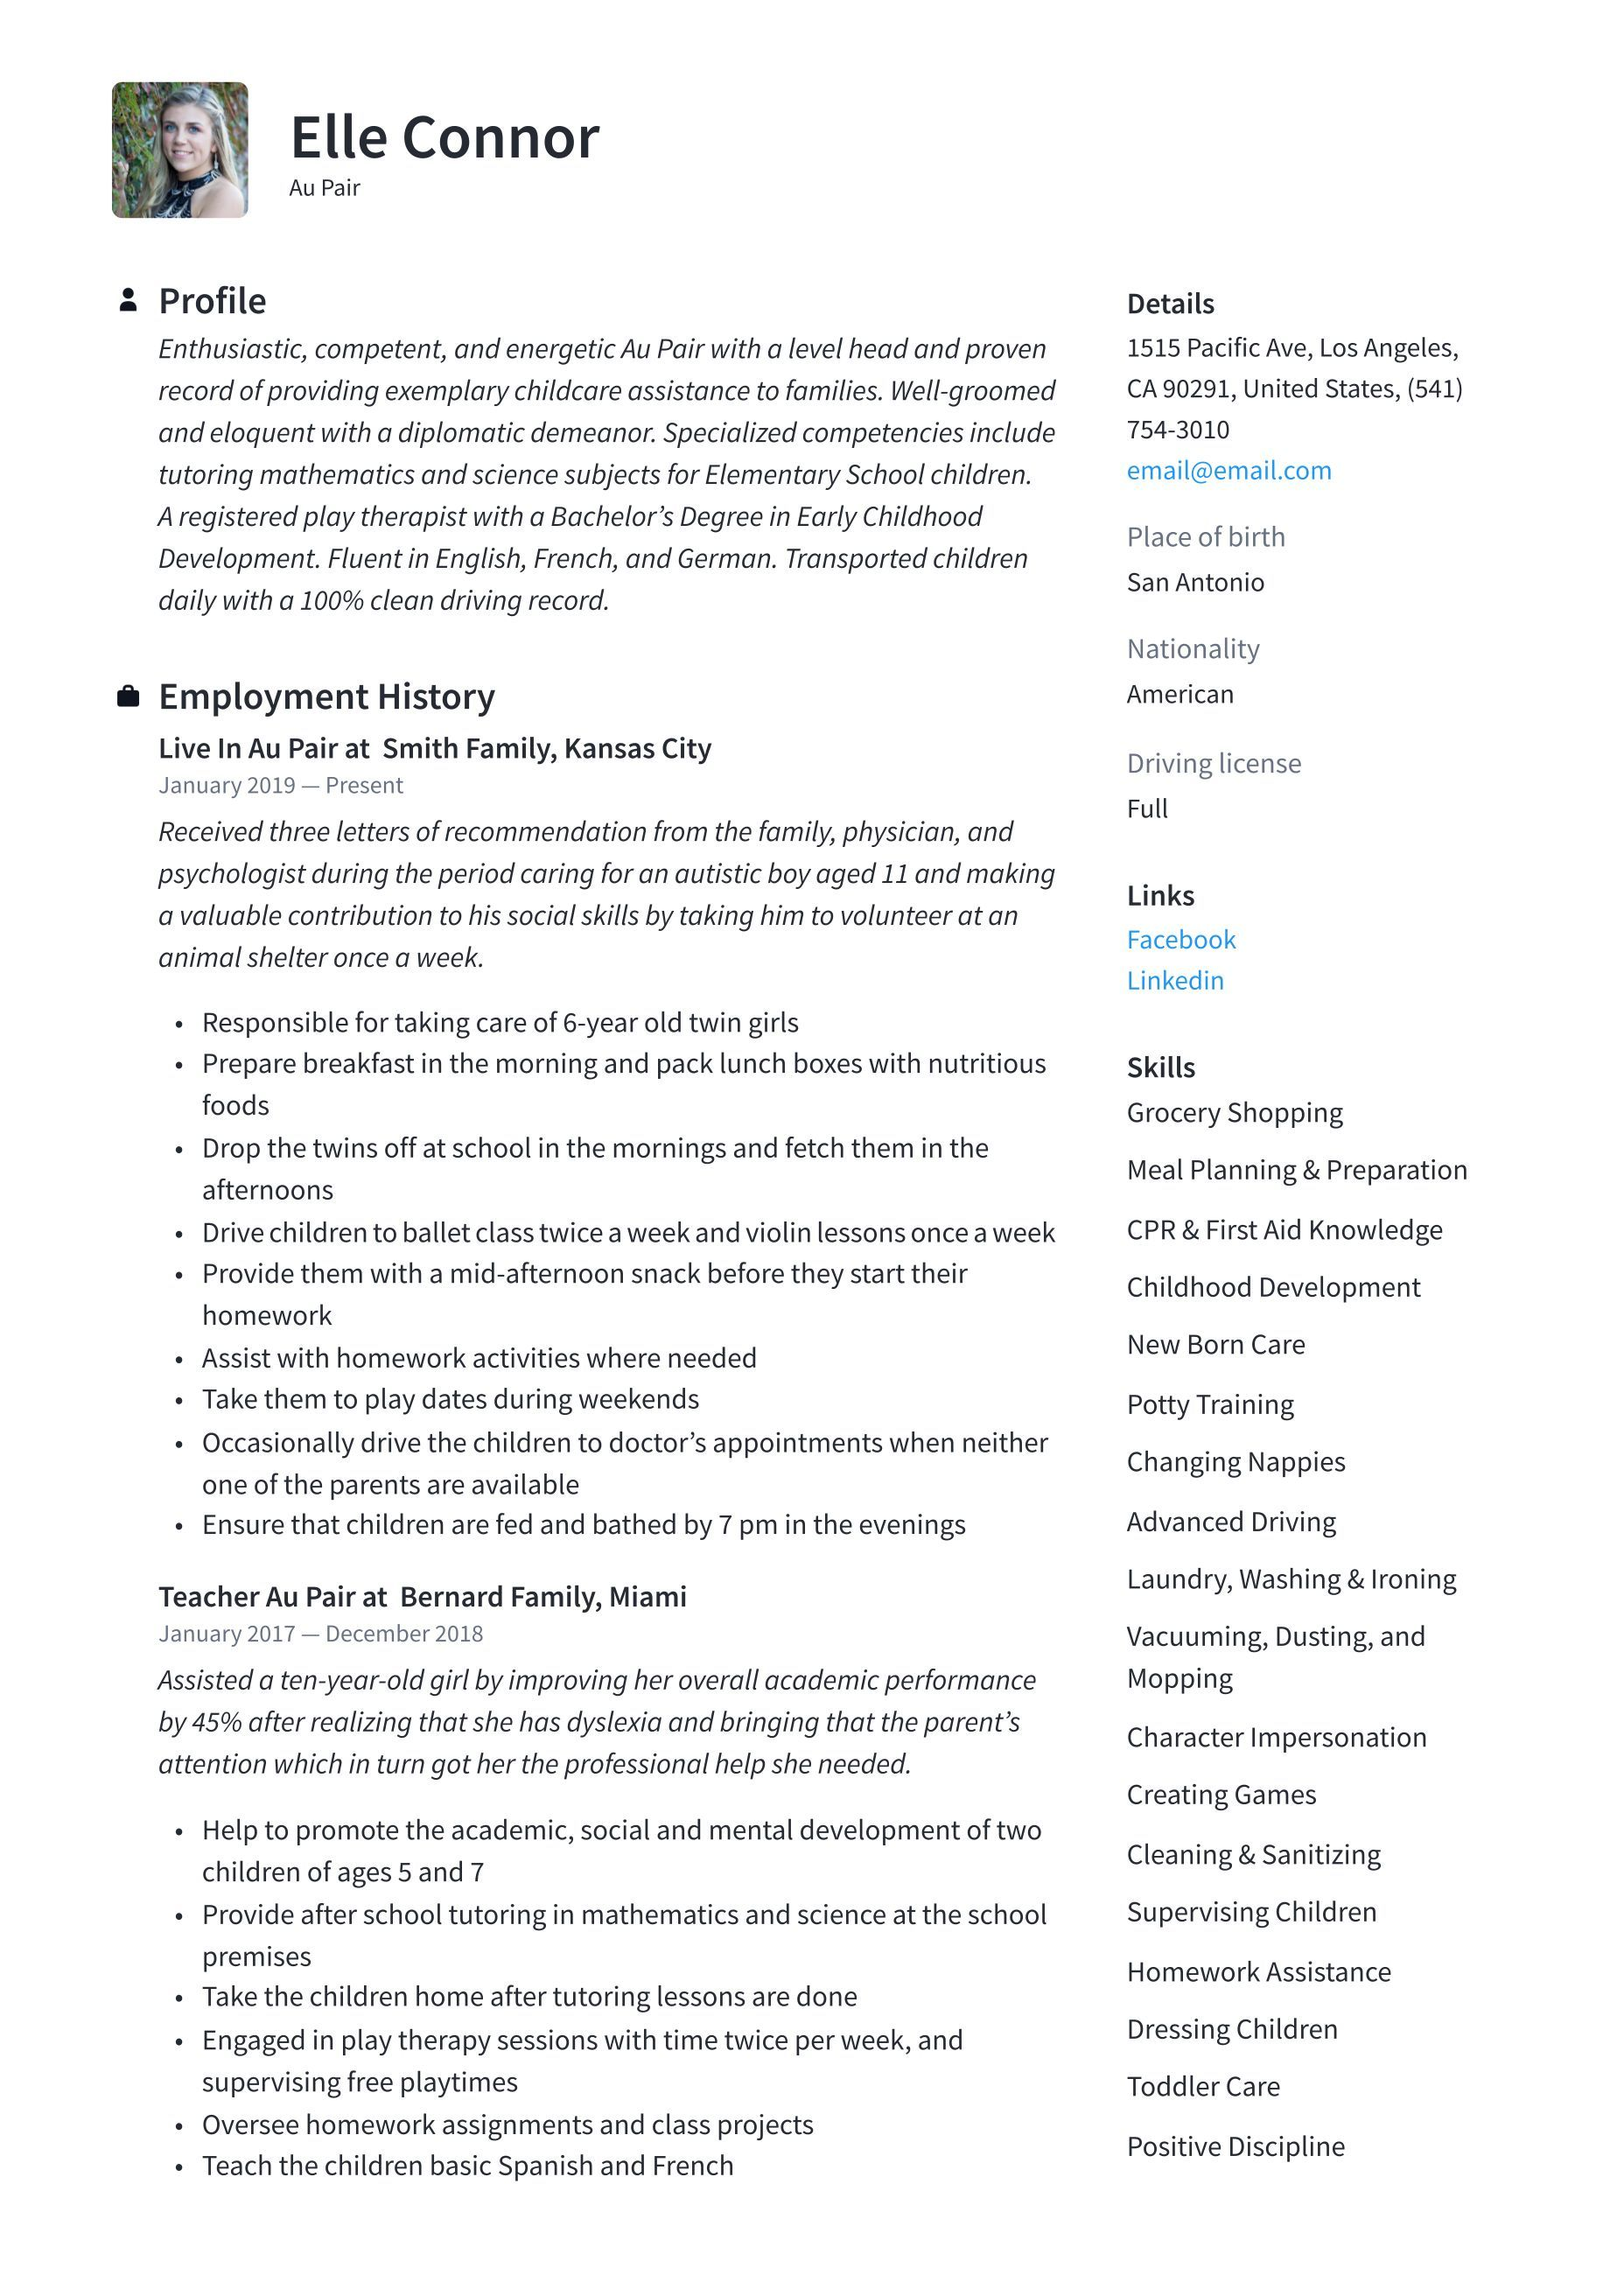 Au pair resume template in 2020 guided writing resume